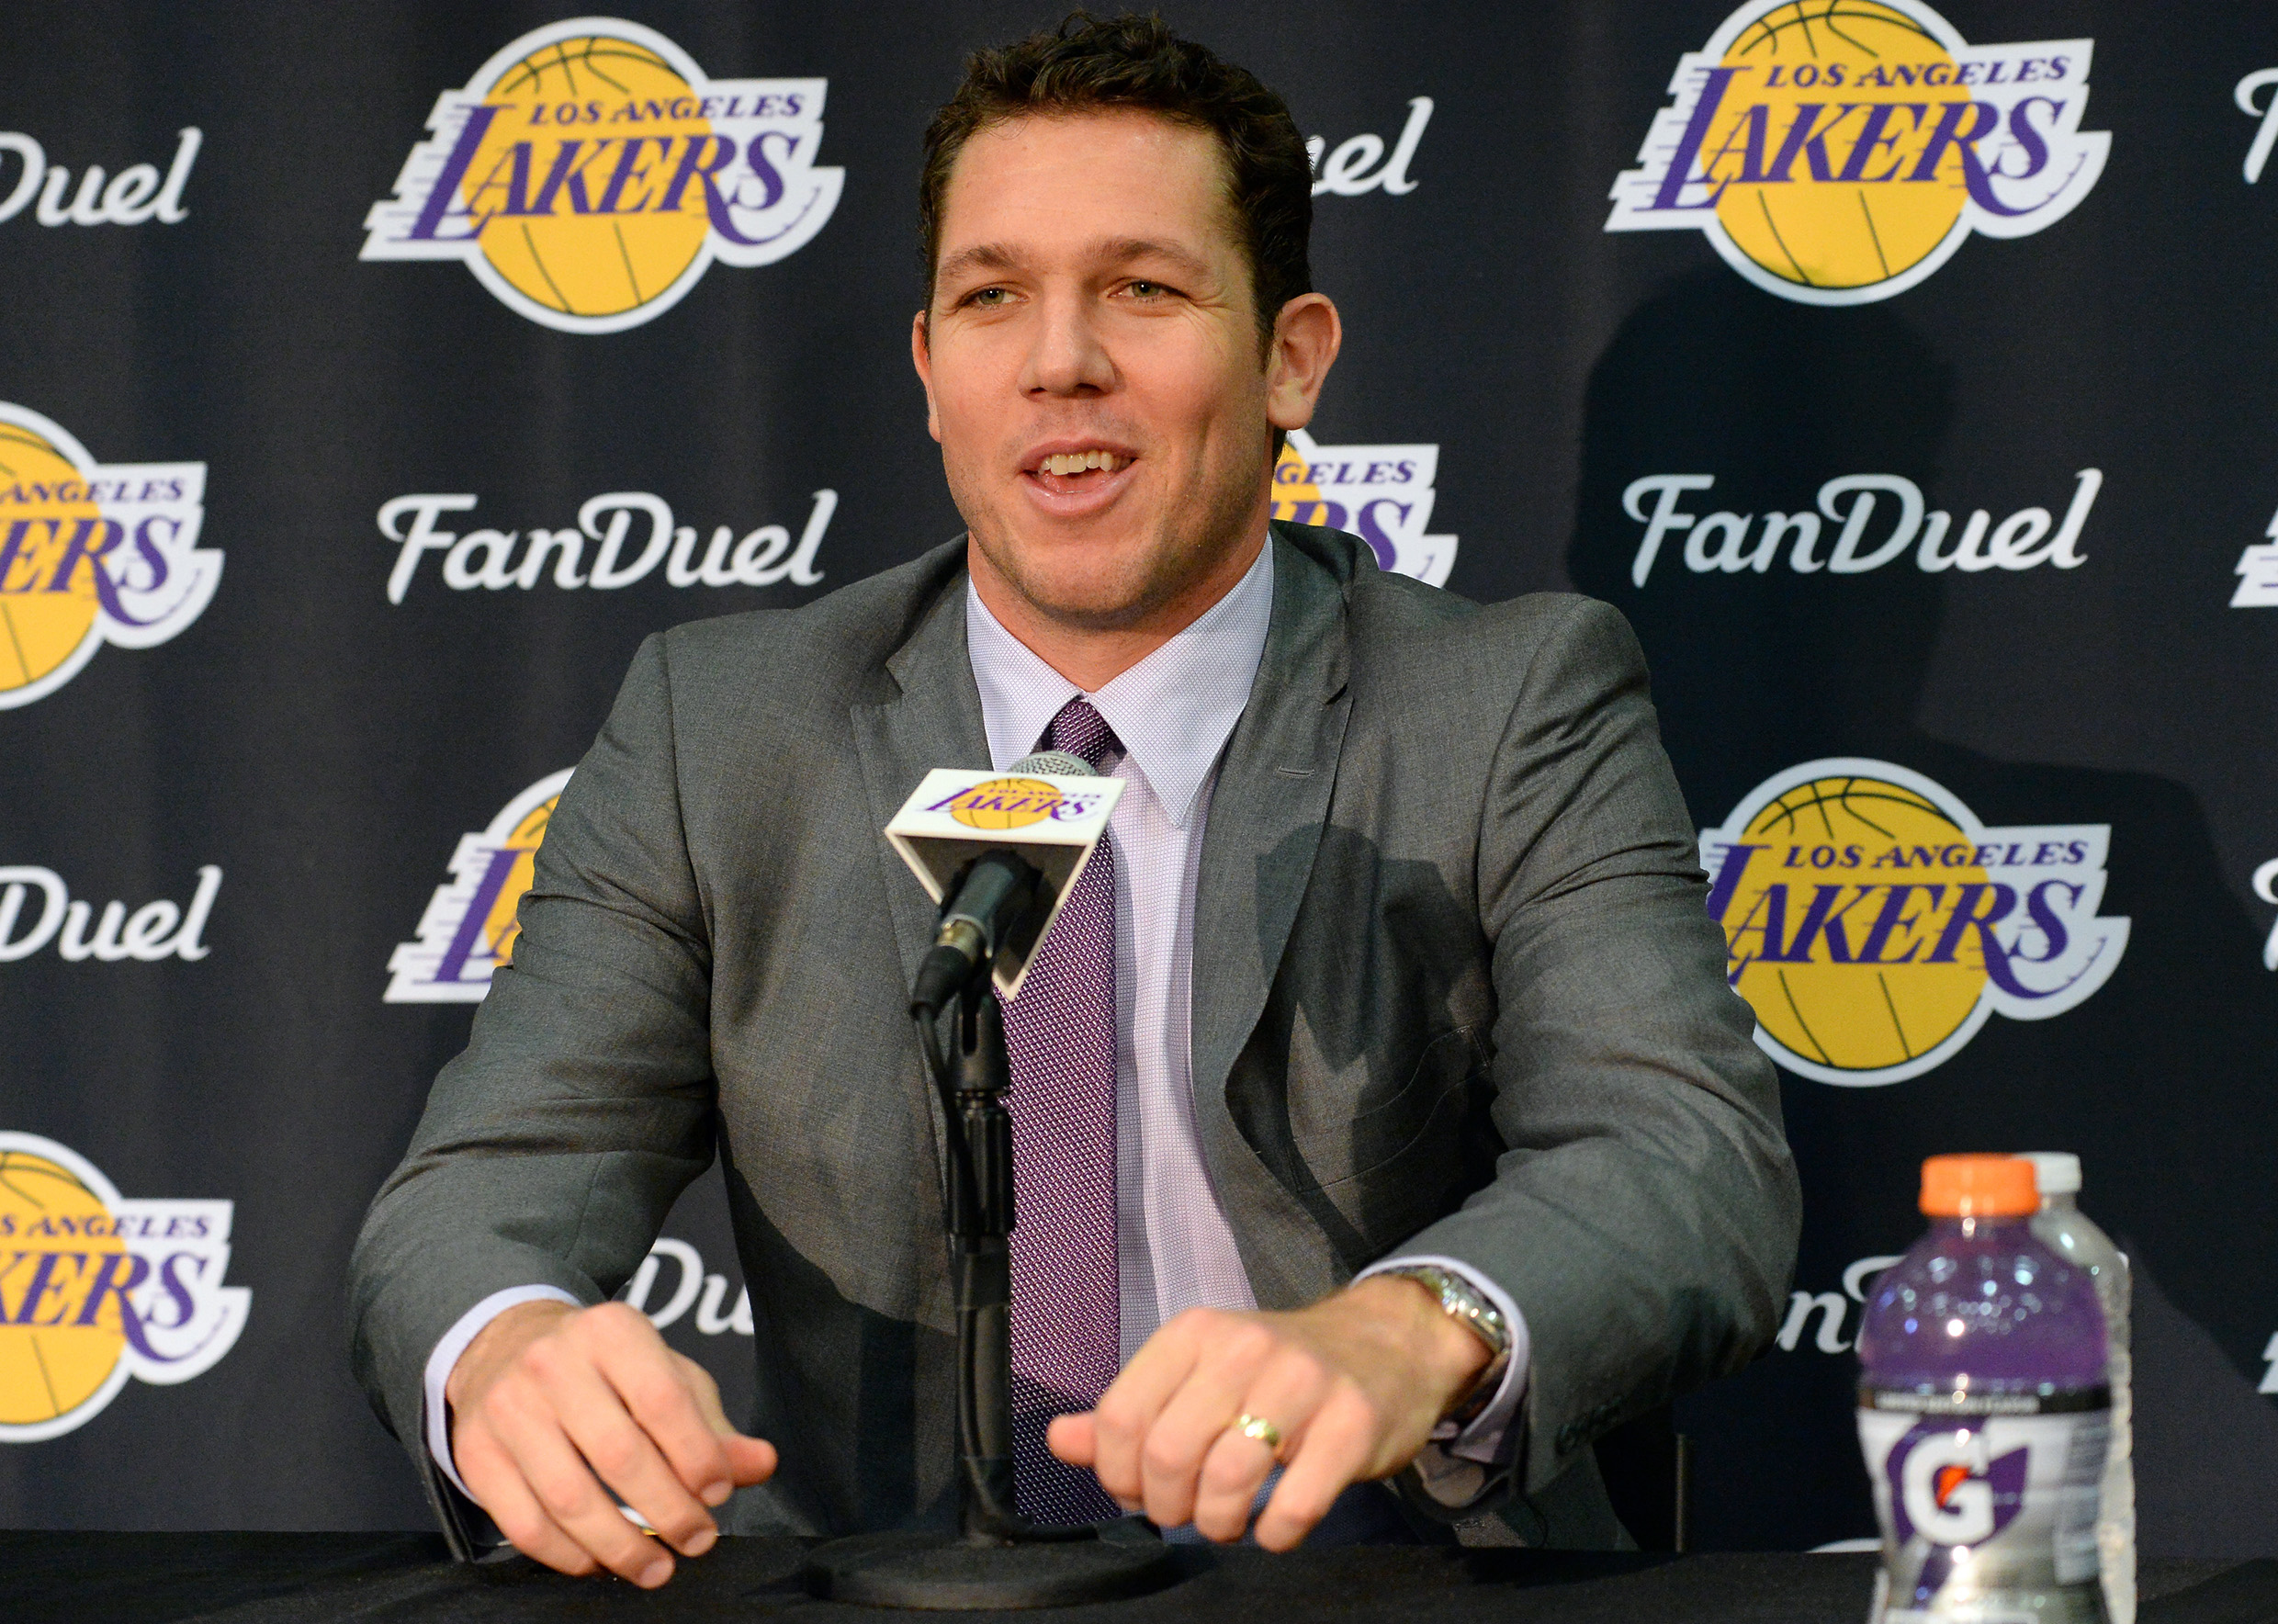 9350531-nba-los-angeles-lakers-press-conference